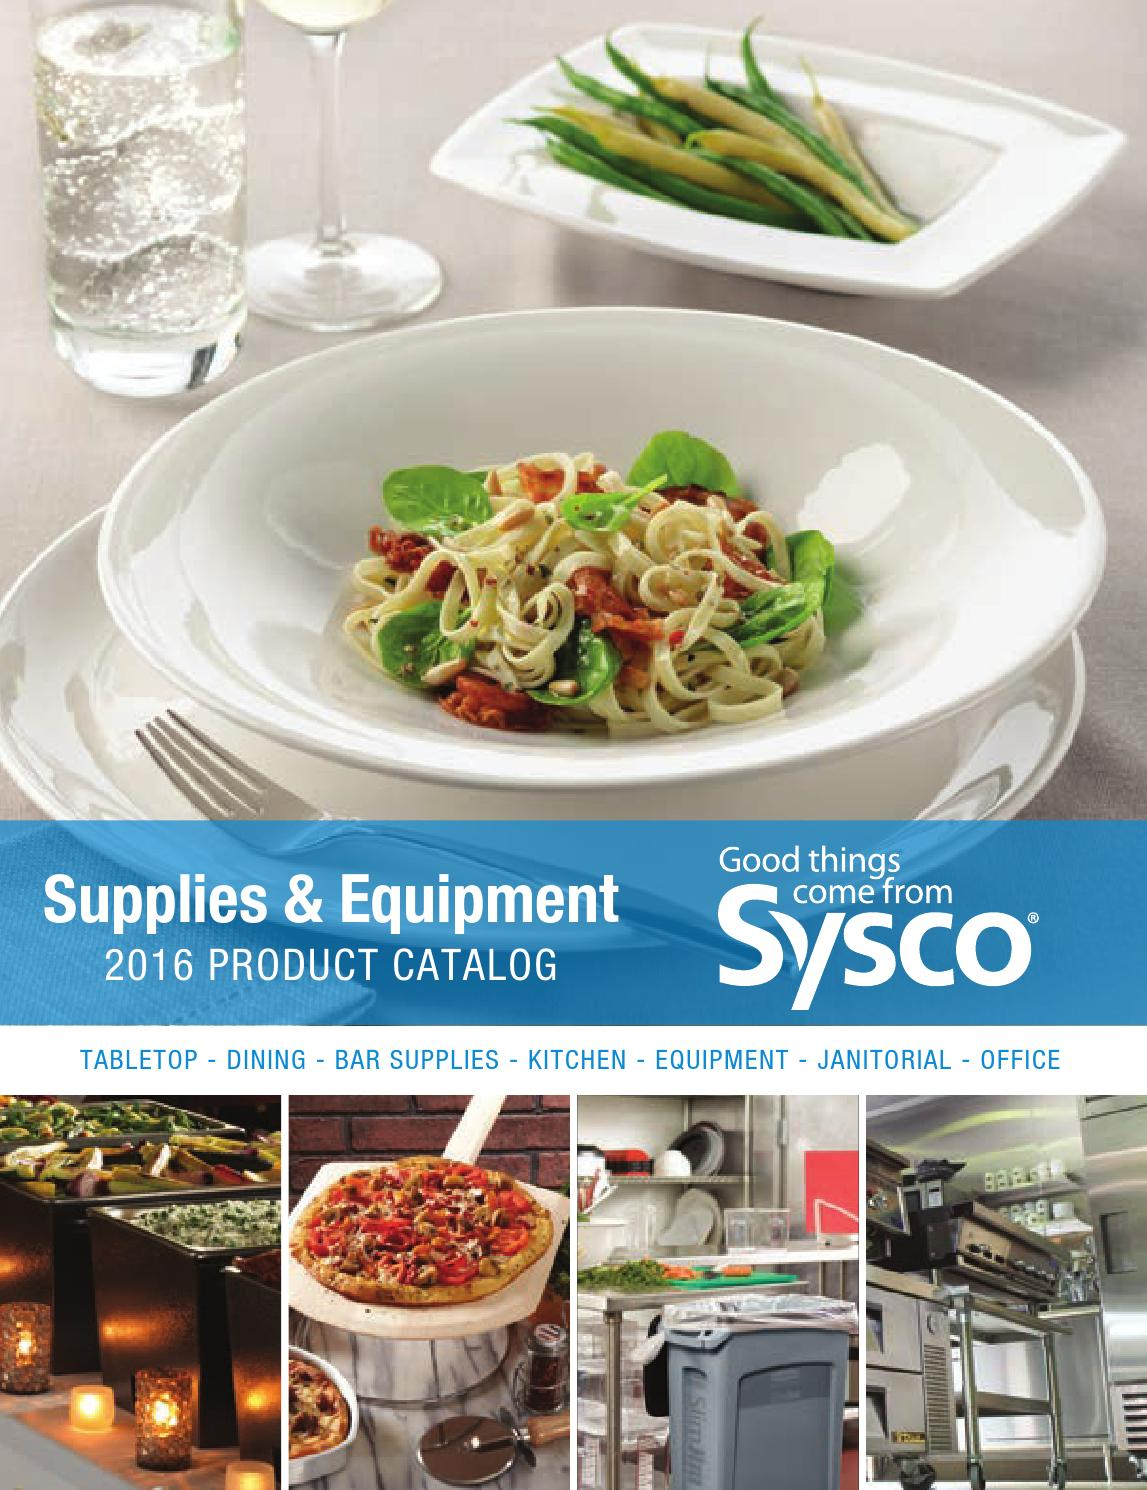 Sysco Supplies & Equipment 2016 Product Catalog by Sysco Arizona - issuu